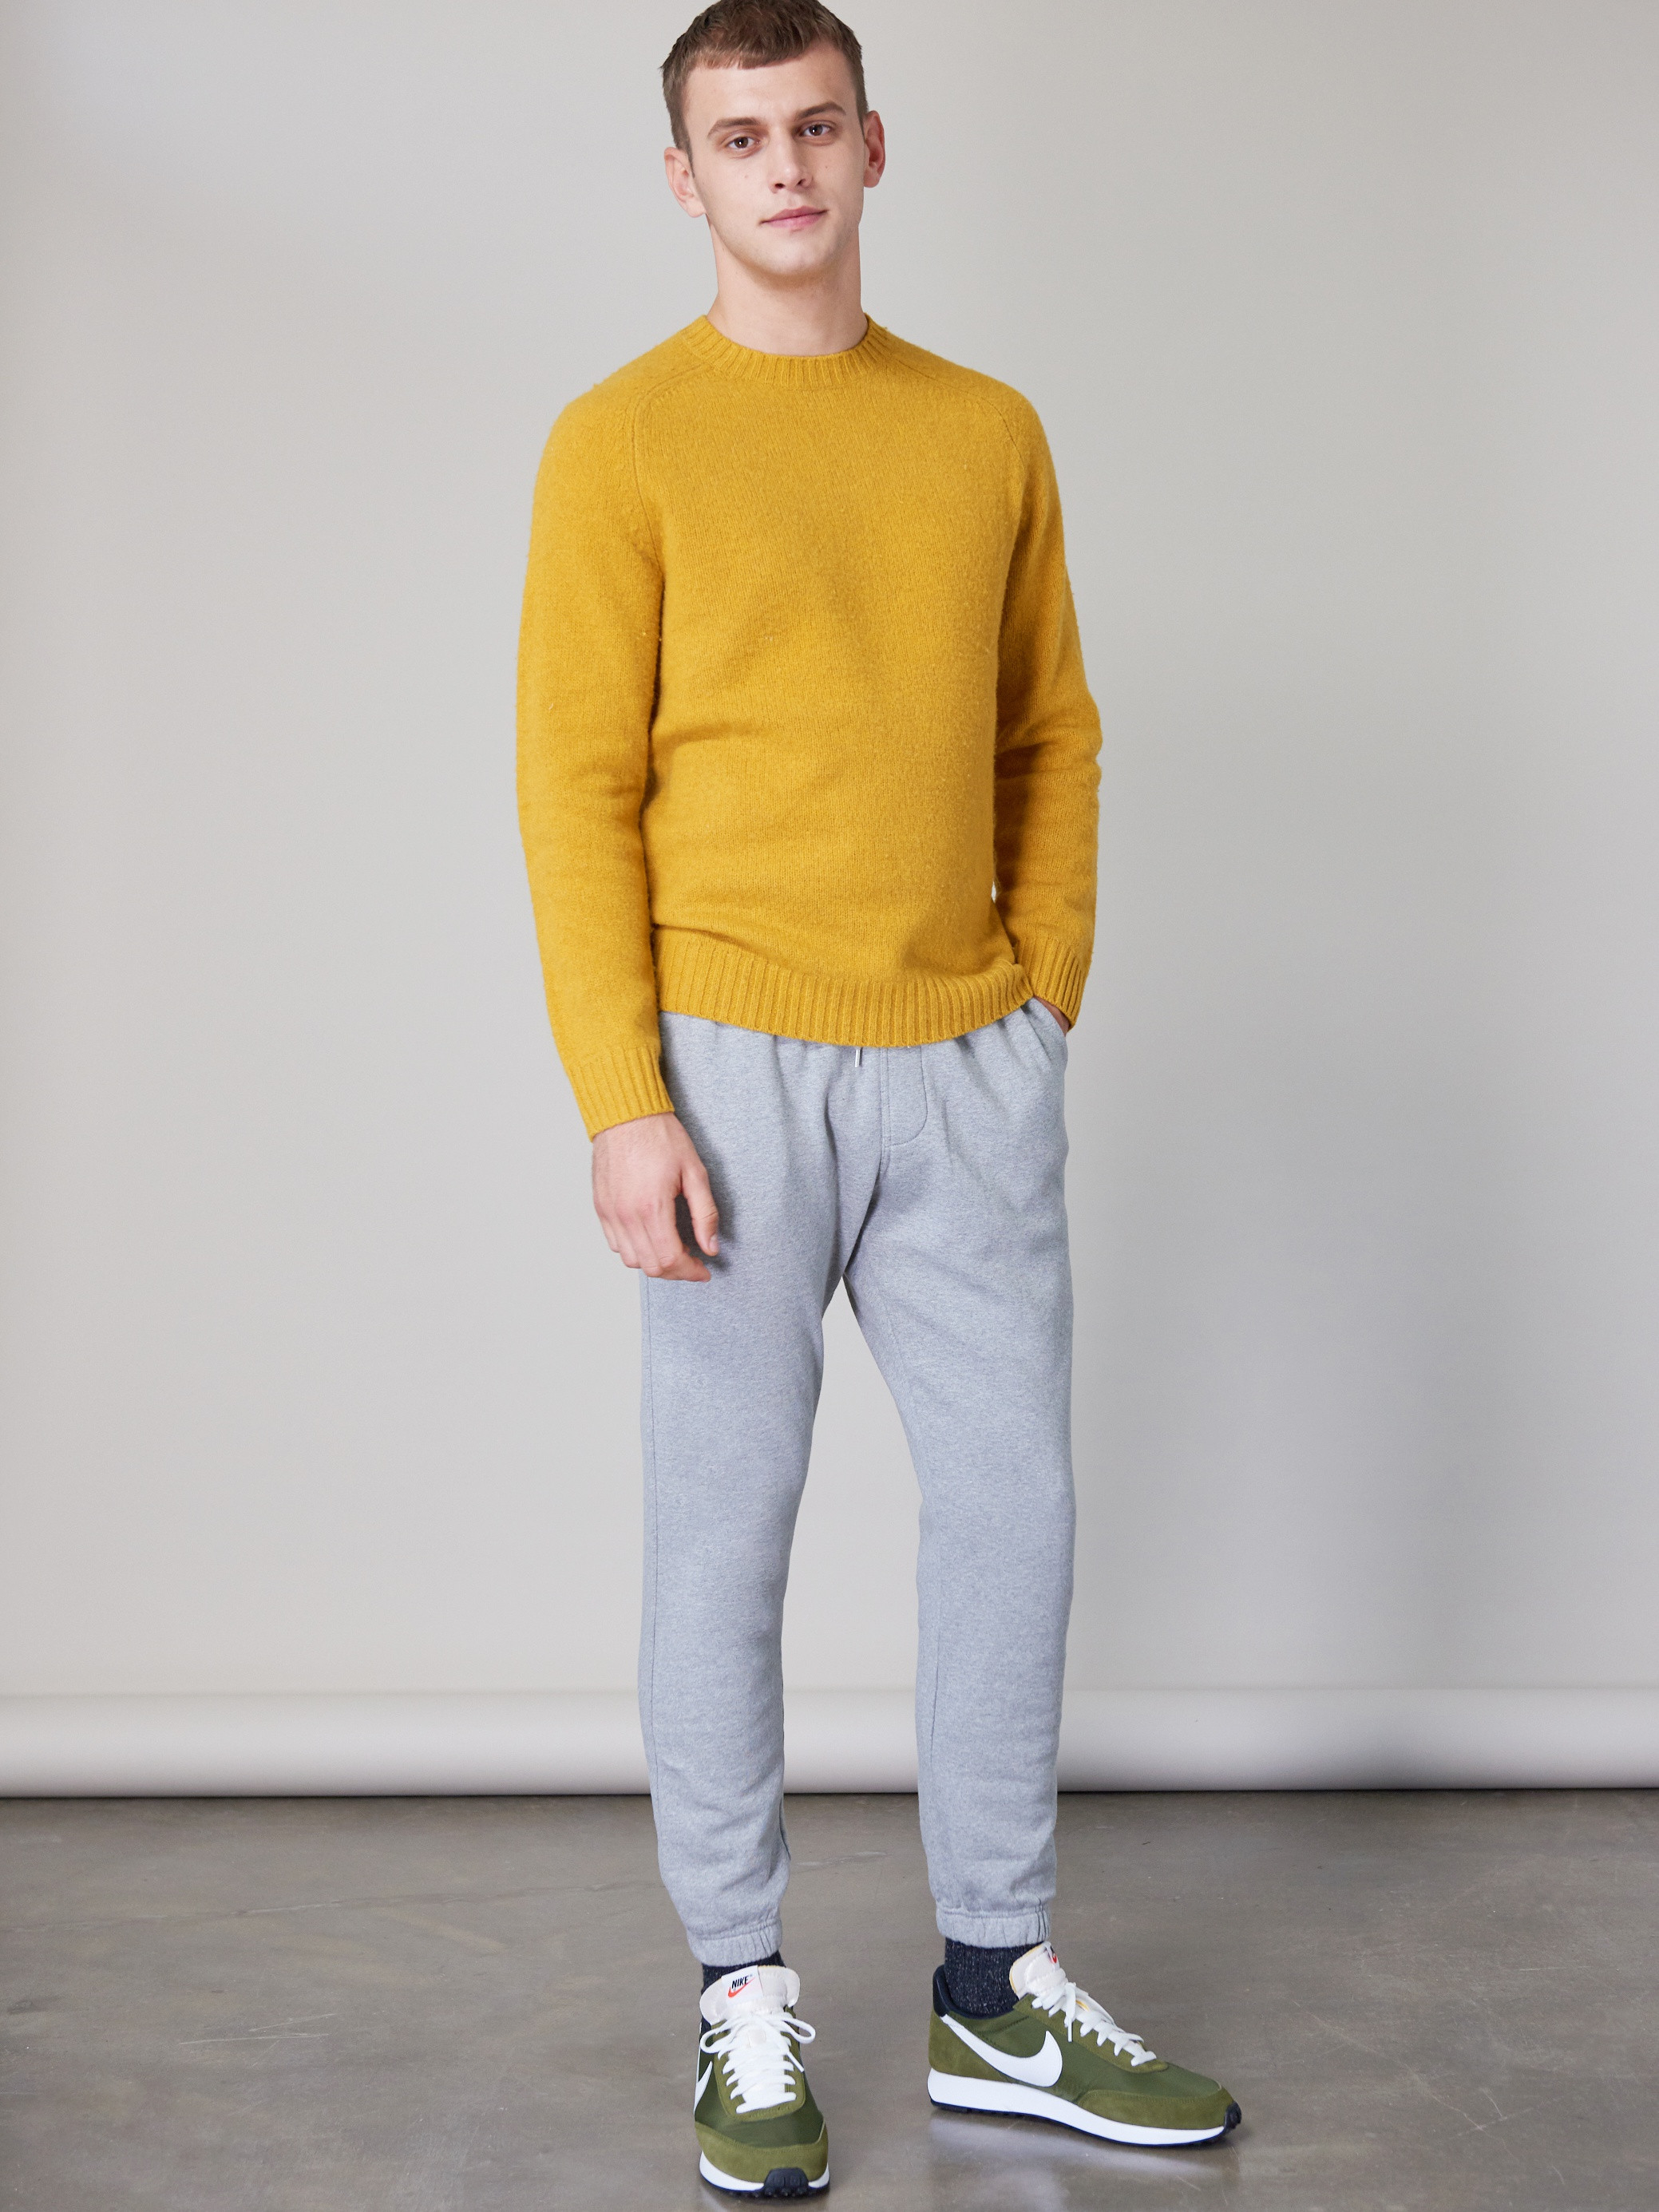 Men's outfit idea for 2021 with yellow plain crew neck knitted sweater, sweatpants, neutral sneakers. Suitable for spring, fall and winter.